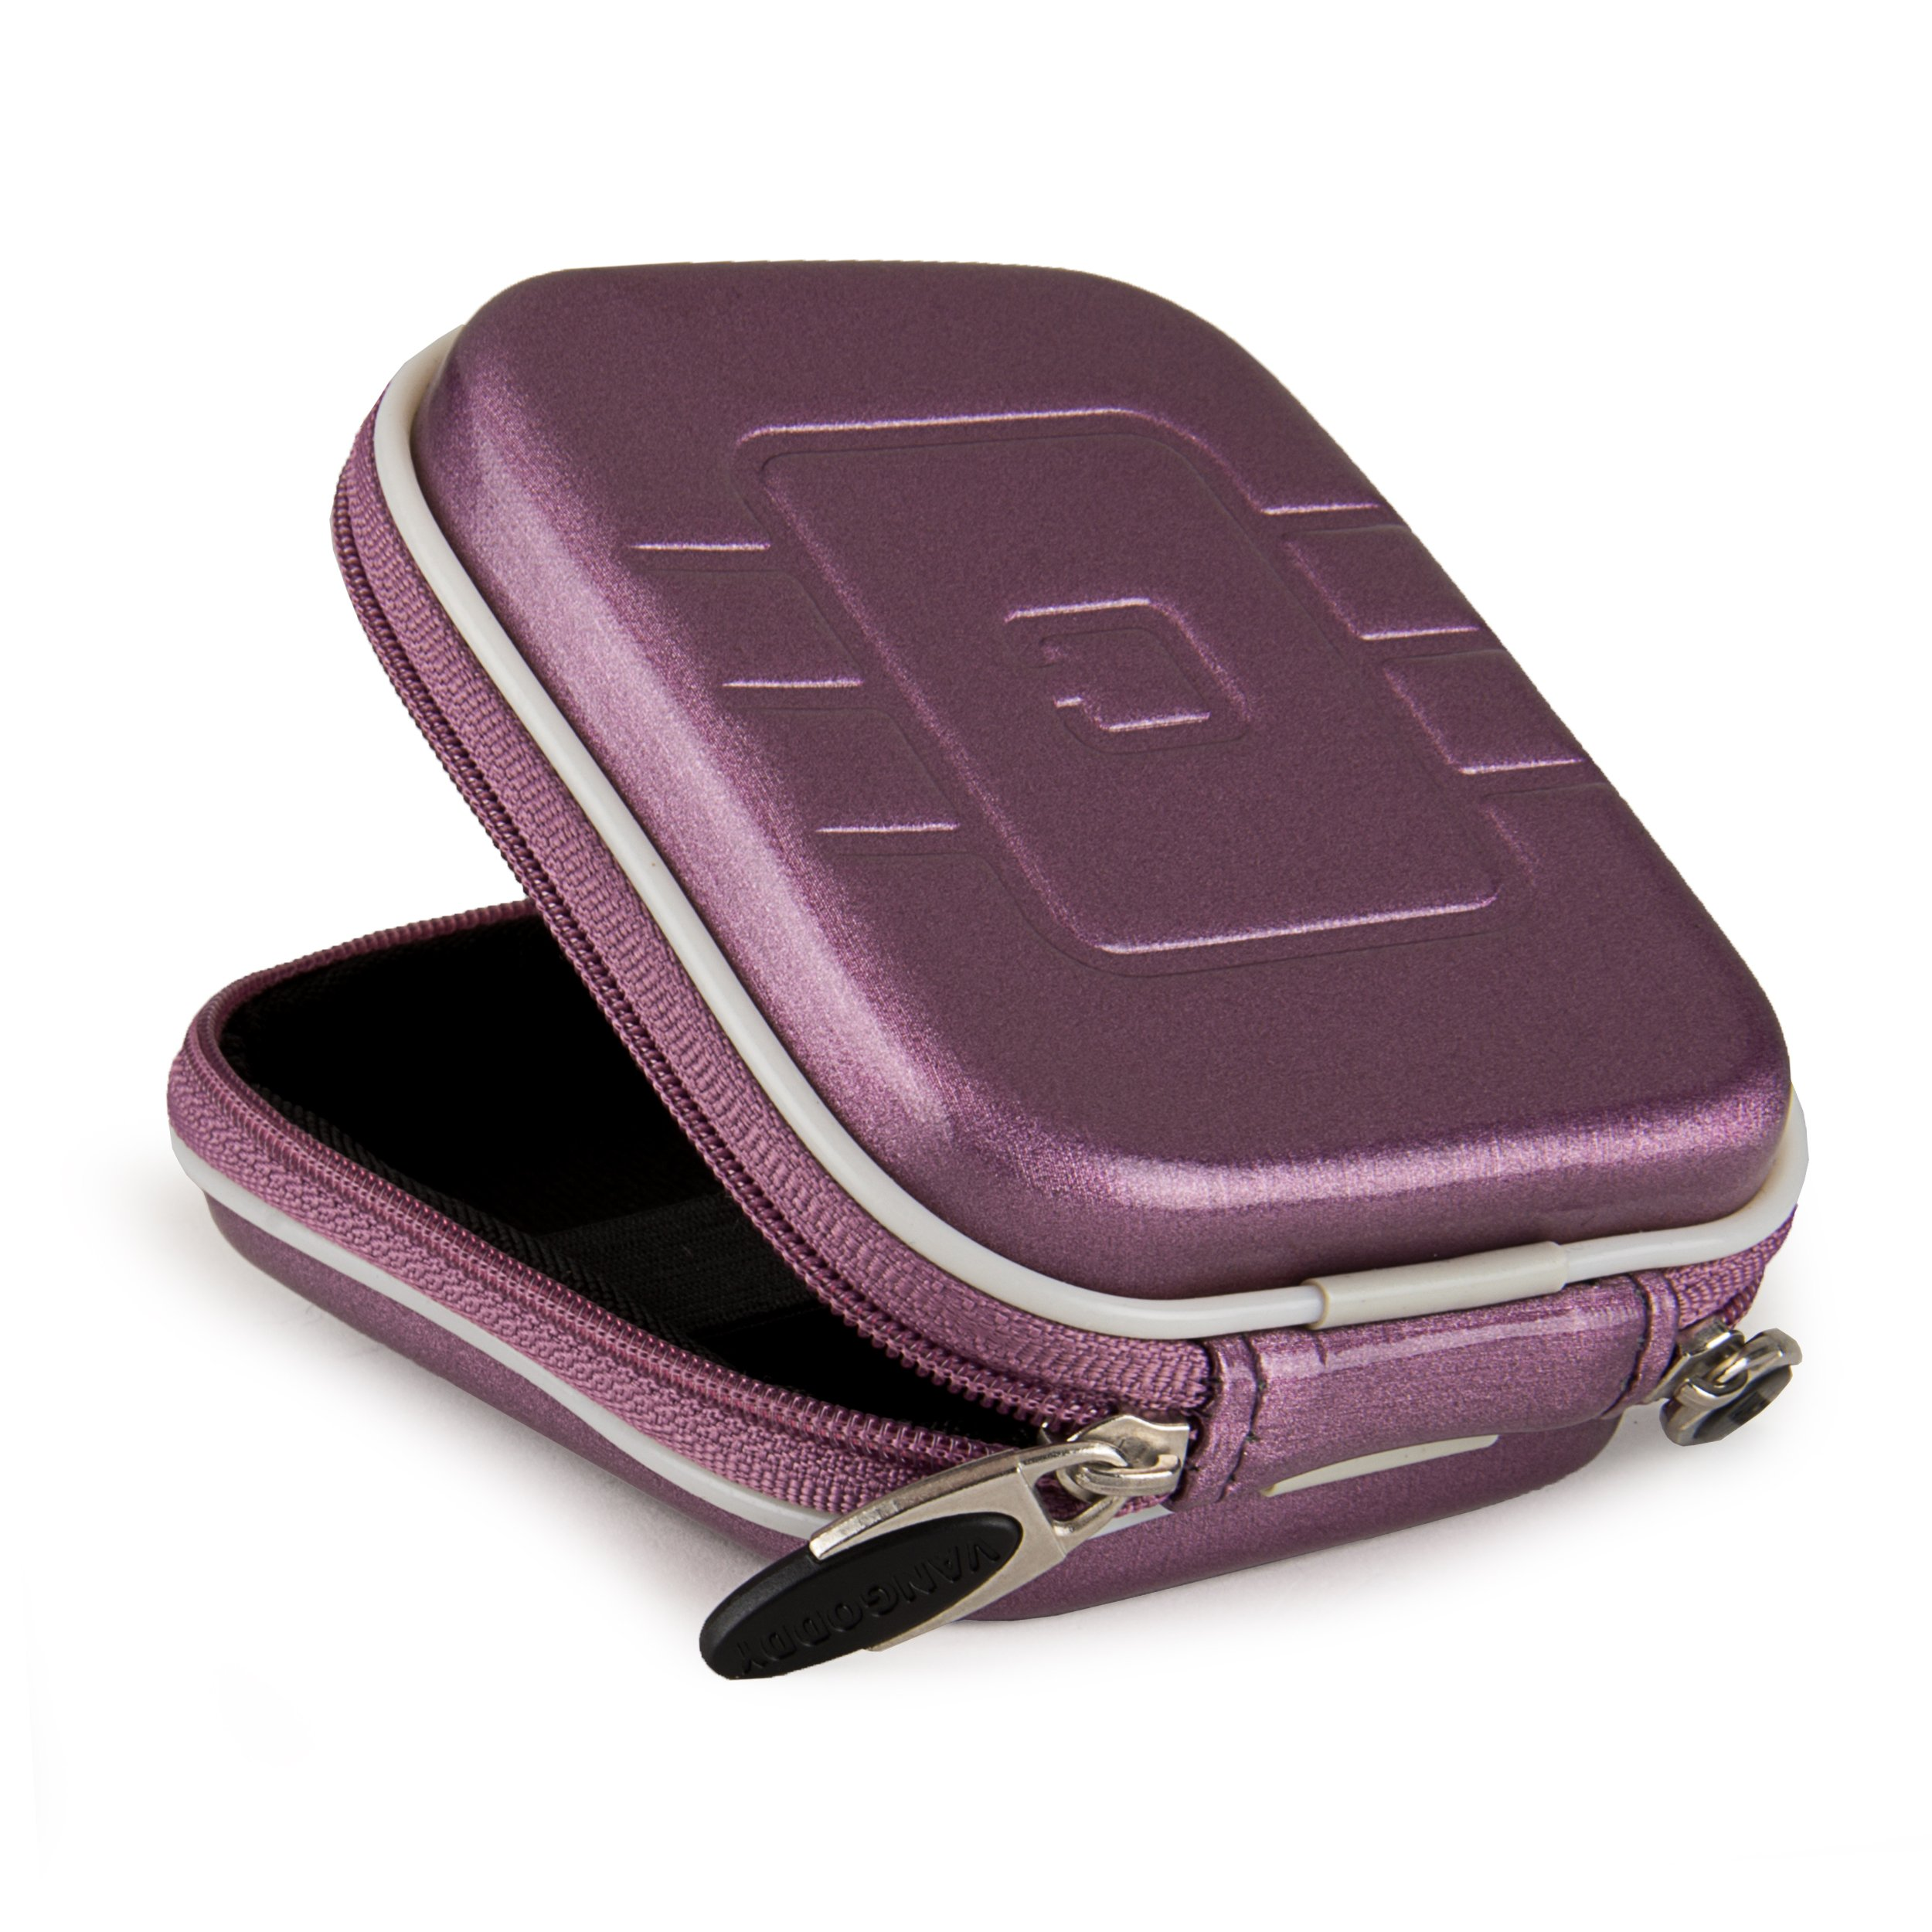 Purple Eva Hard Shell Protective Carrying case cover for Diabetic Organizer Carrying Case / Kit by SumacLife